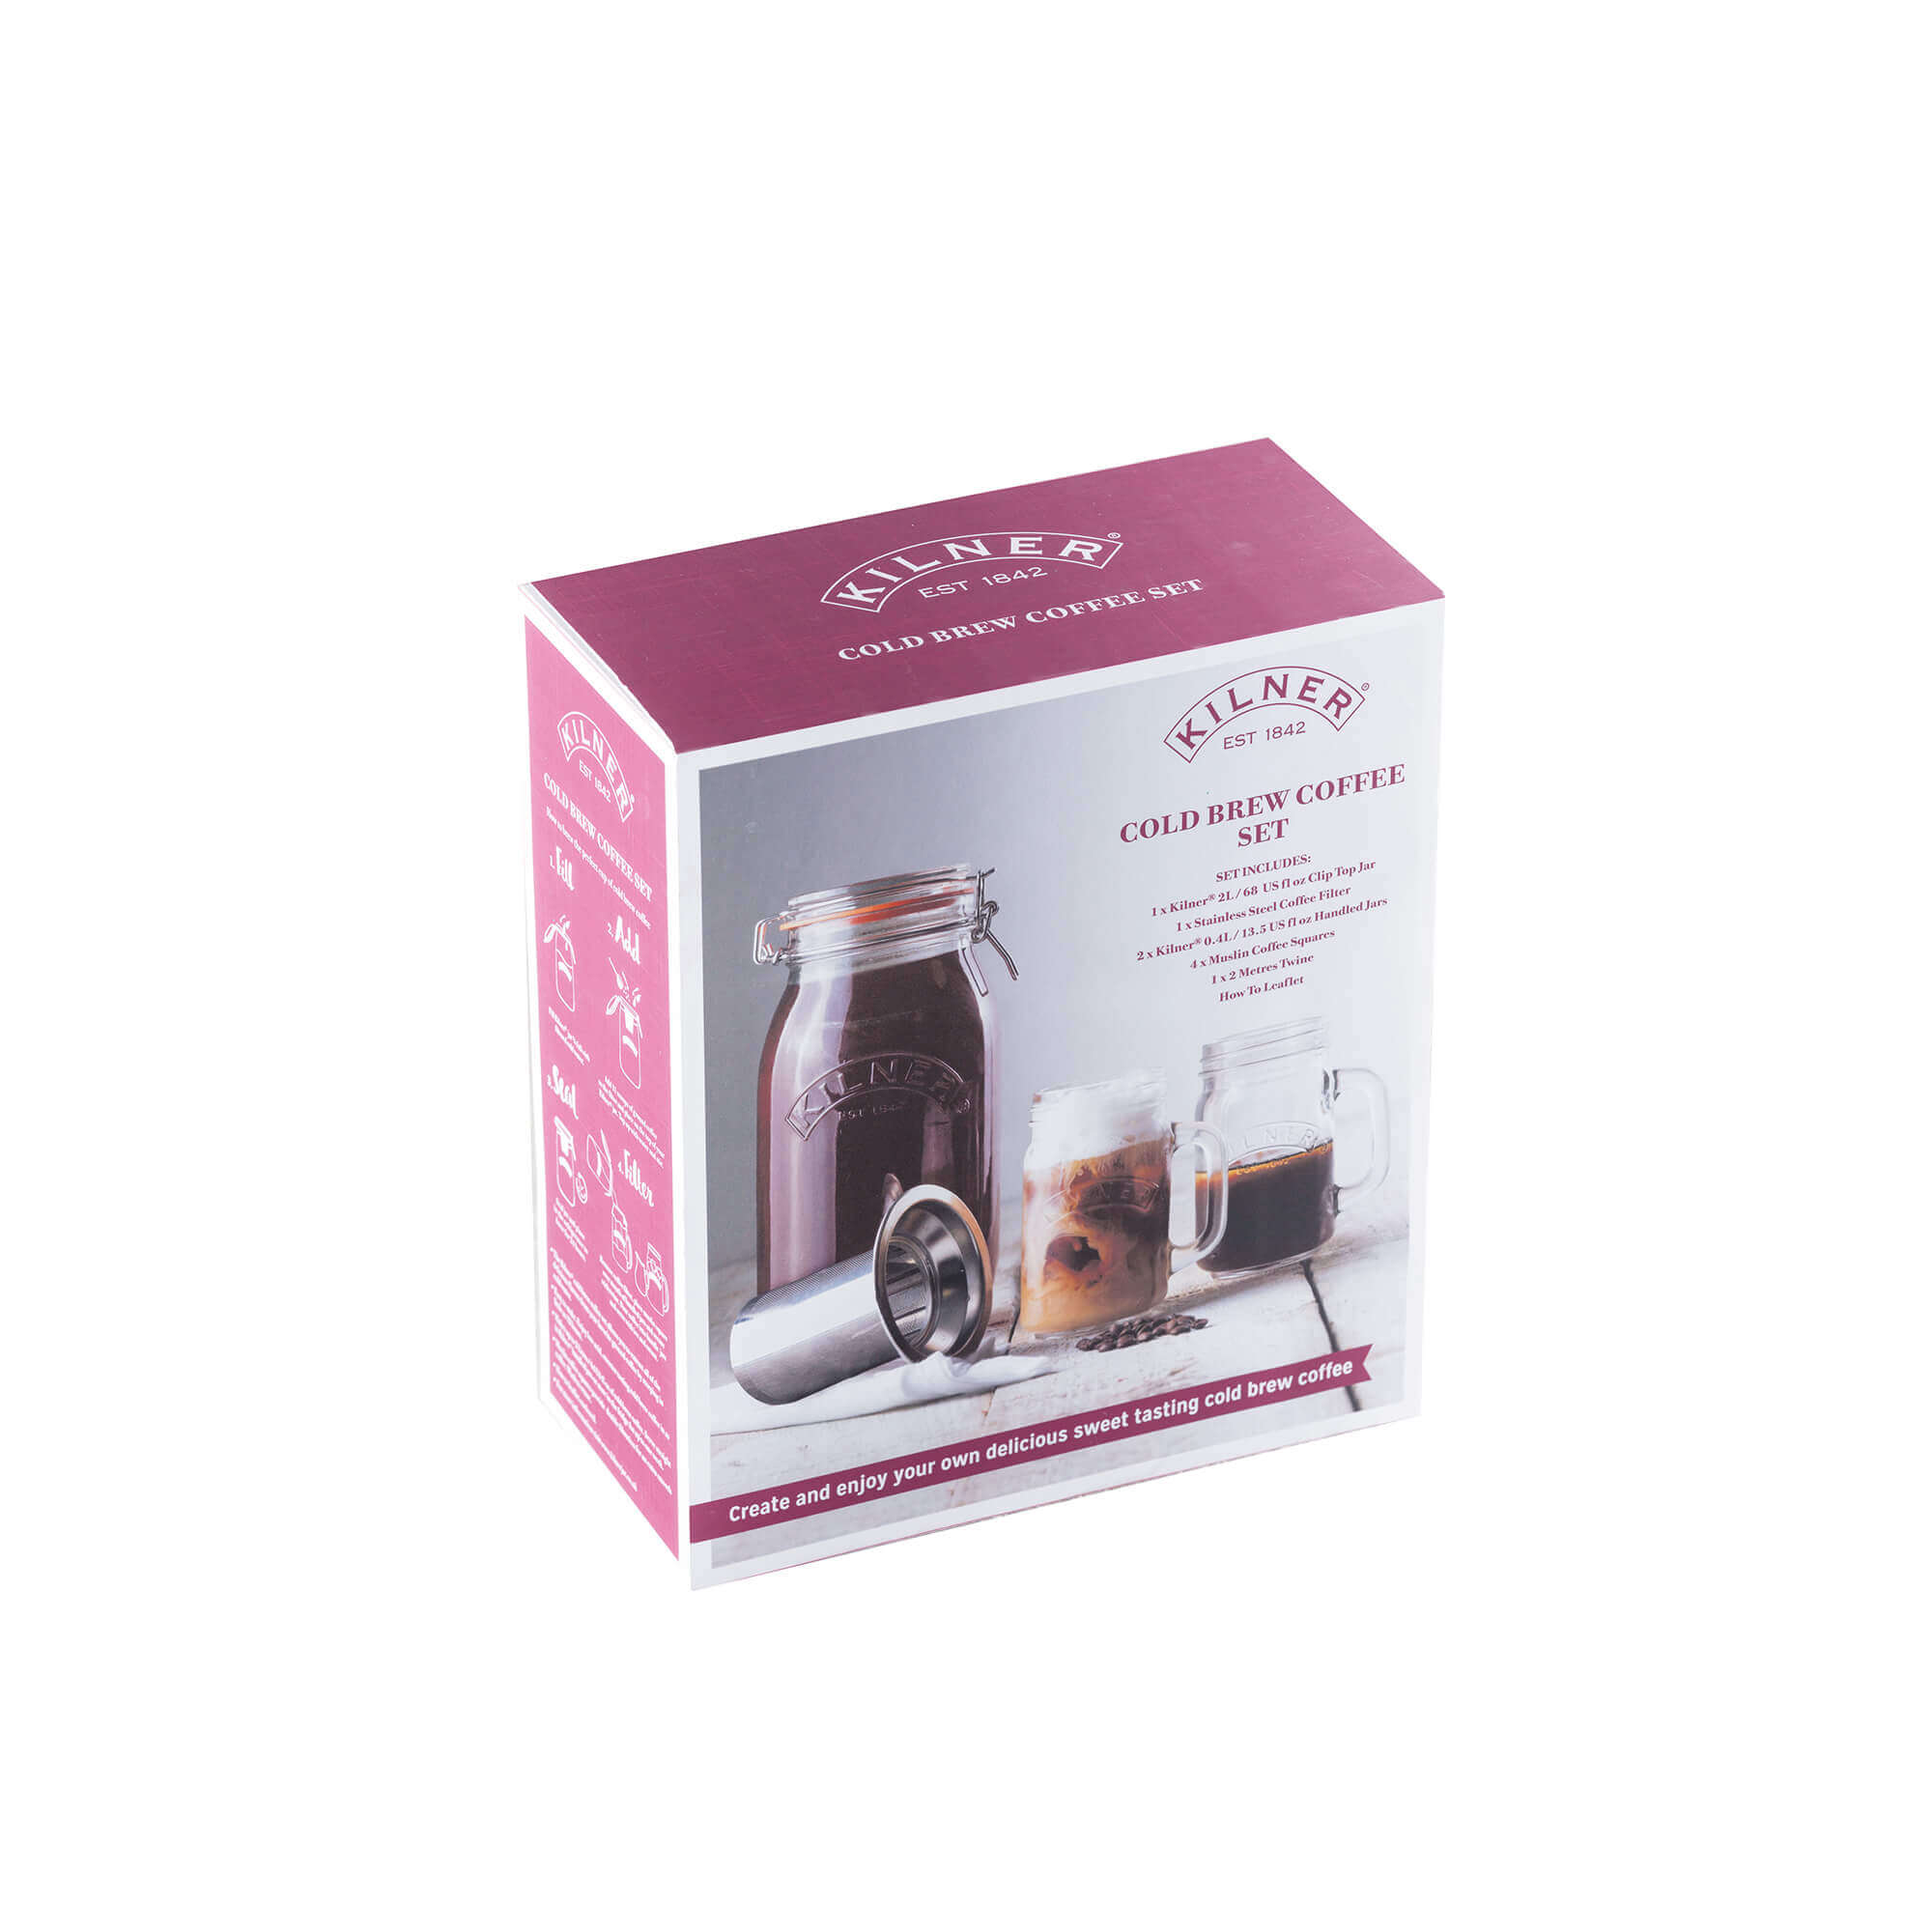 Cold Brew Coffee Set von Kilner in der Box